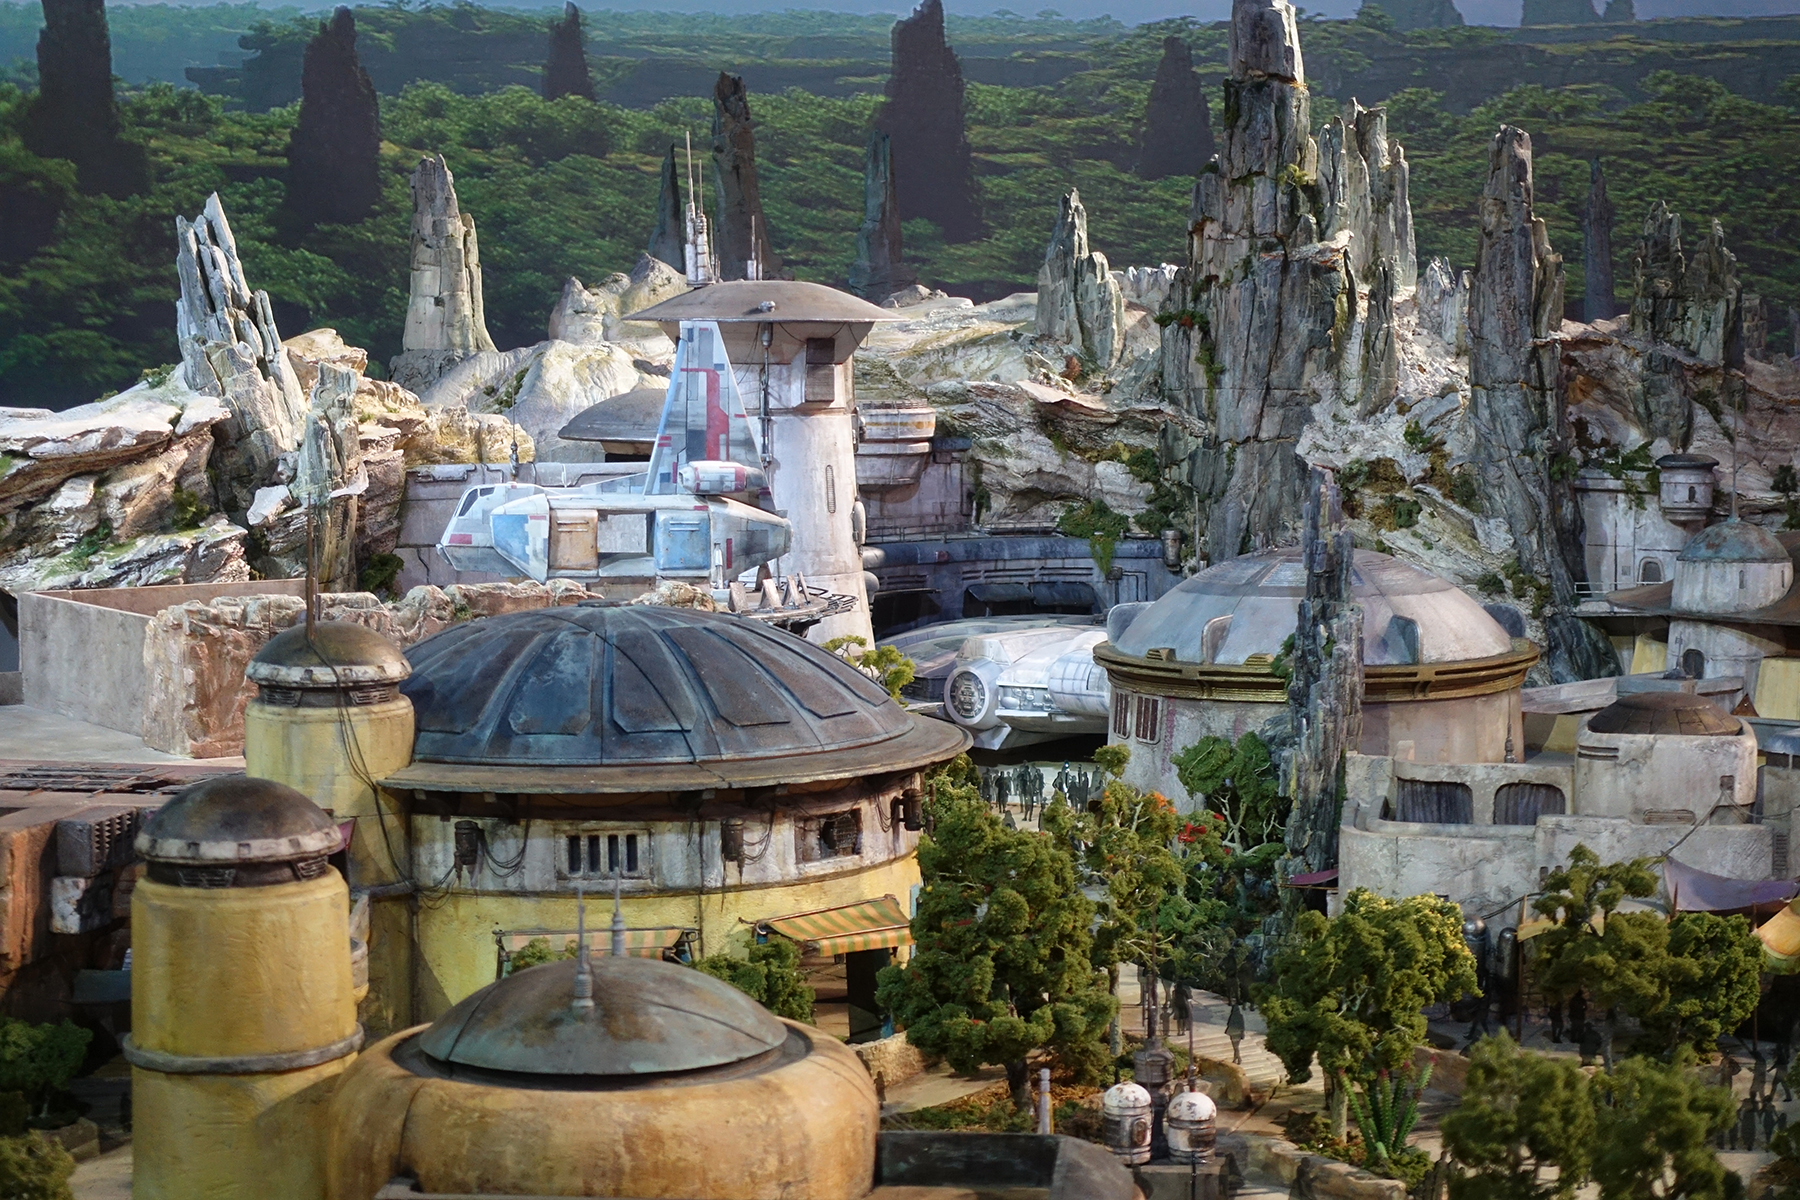 Disney Announces Three New Star Wars Films, Delays Avatar Sequels